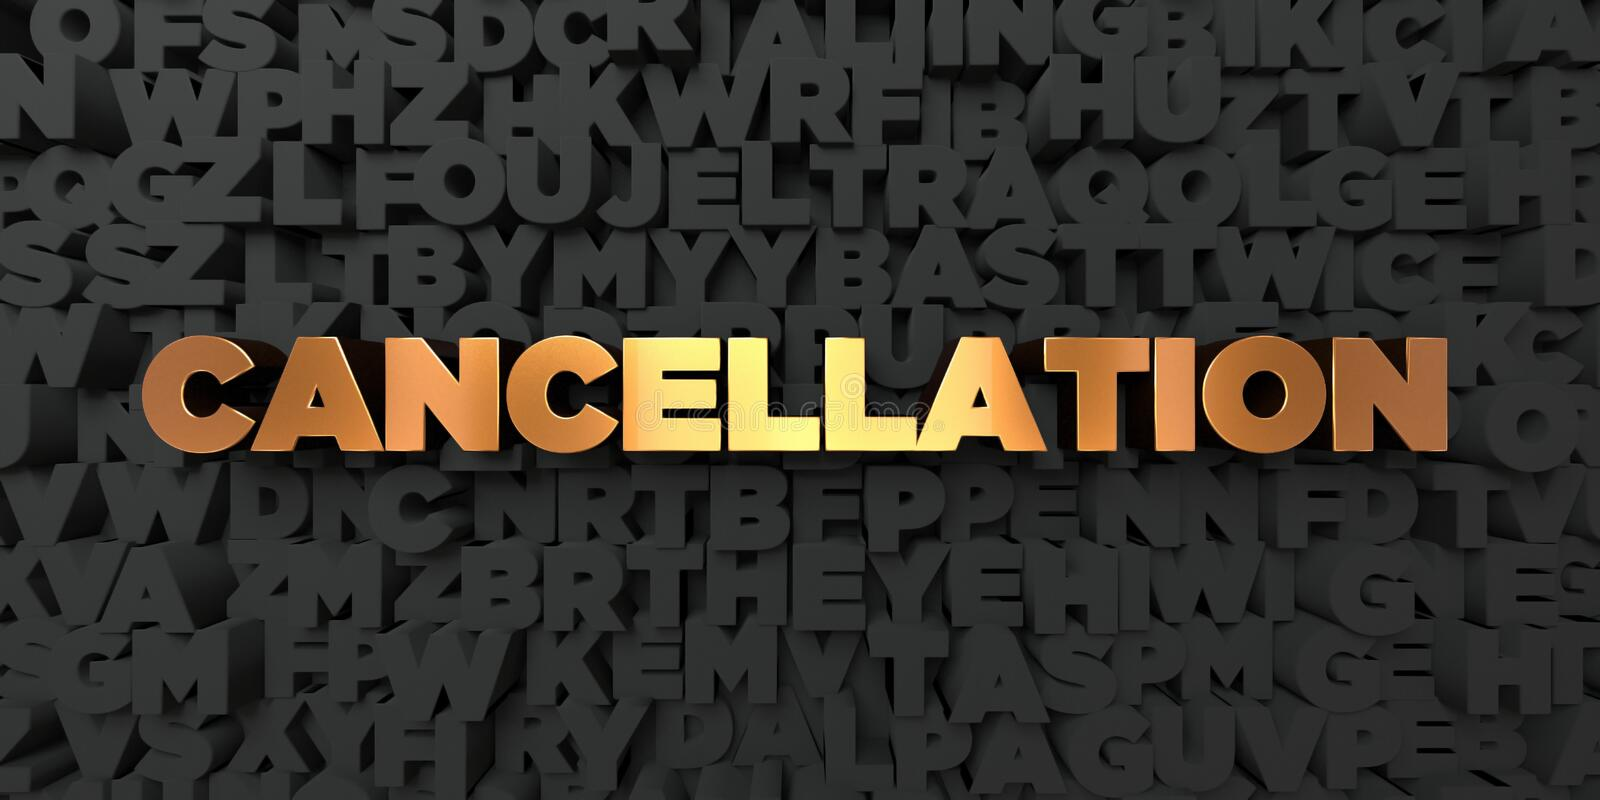 Cancellation - Gold text on black background - 3D rendered royalty free stock picture. This image can be used for an online website banner ad or a print royalty free illustration